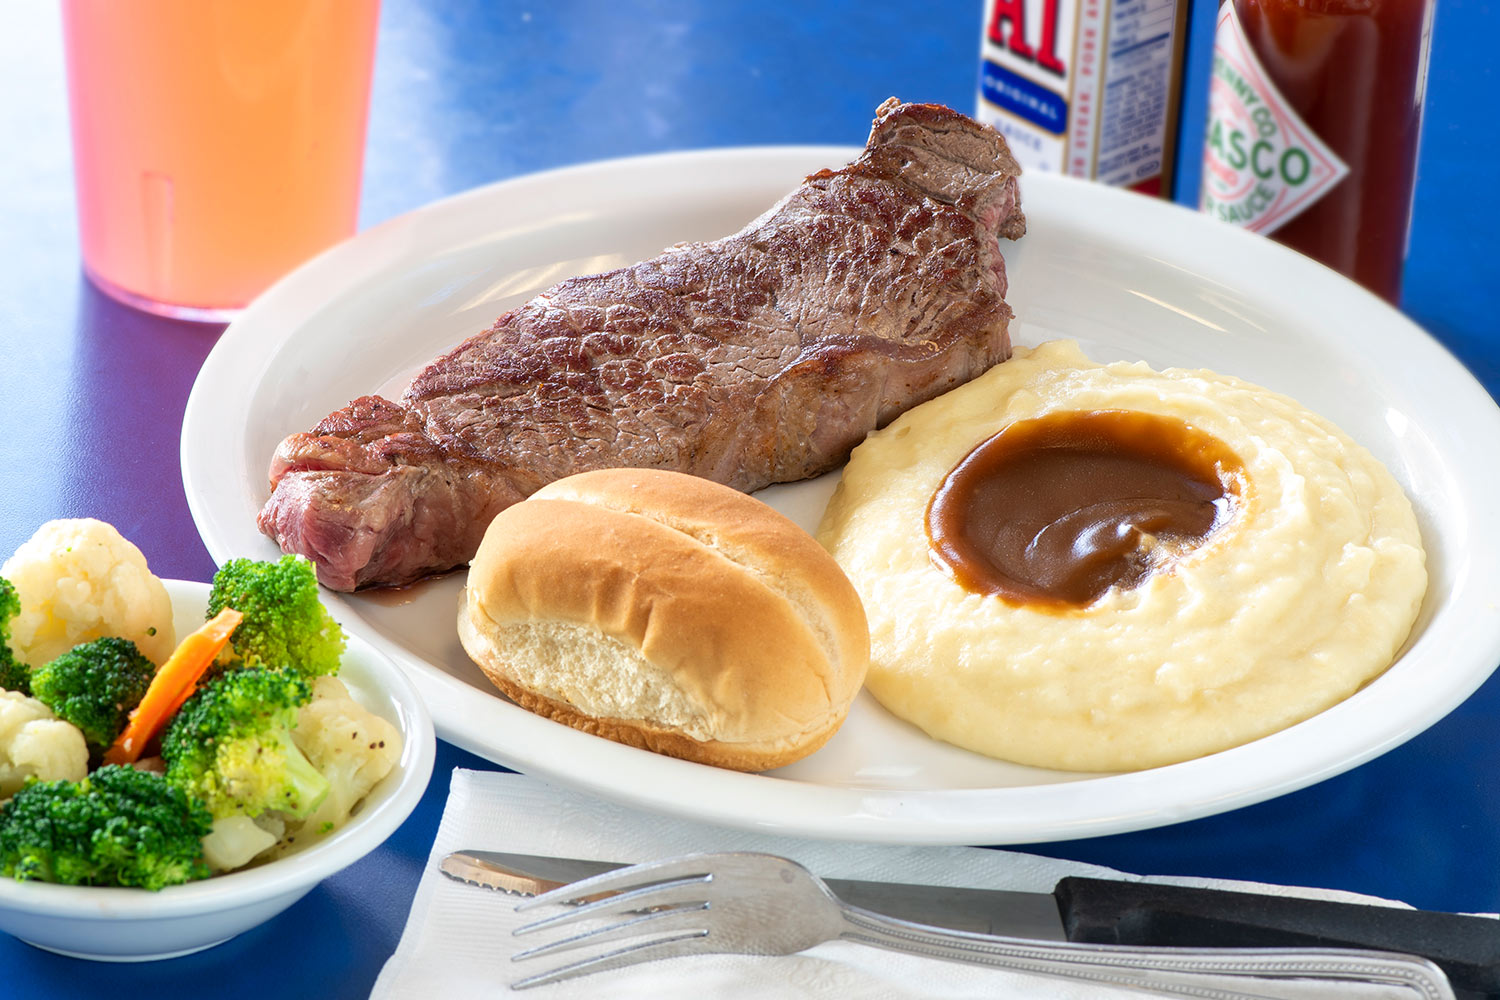 New York Steak with mashed potatoes and a roll